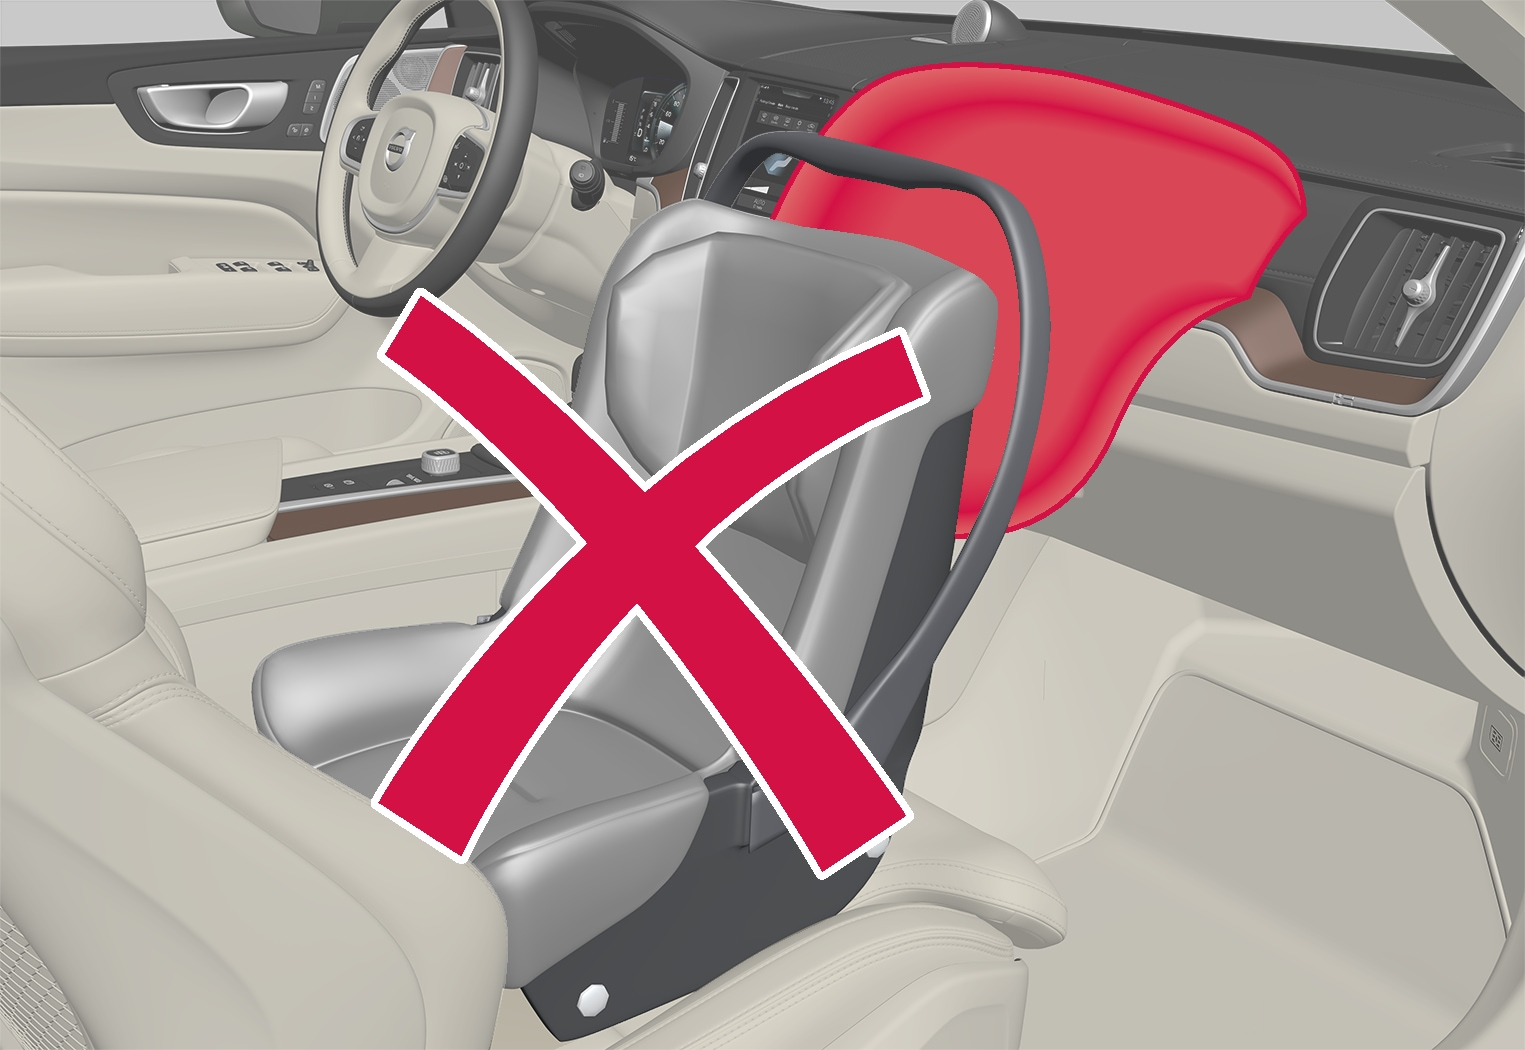 P5-1717-XC60–Safety–Child seat and airbag